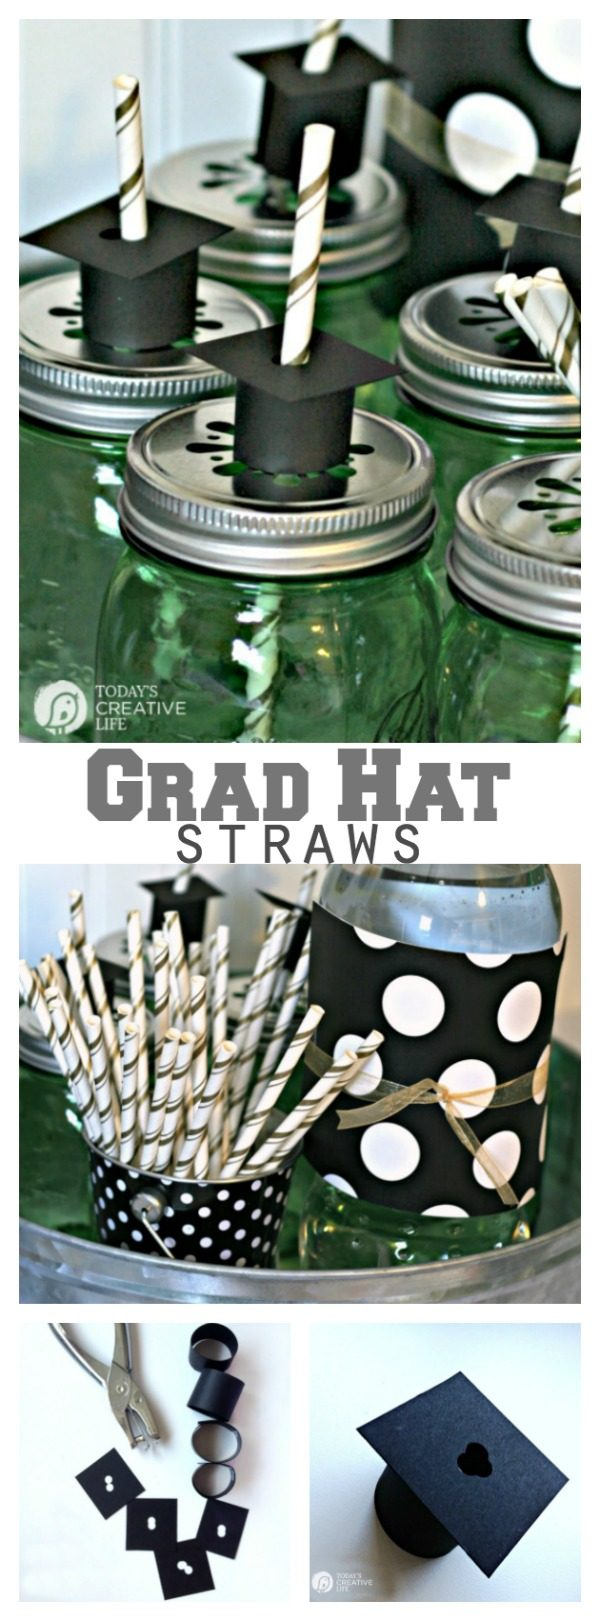 titled photo (and shown): Graduation hat drinking straws